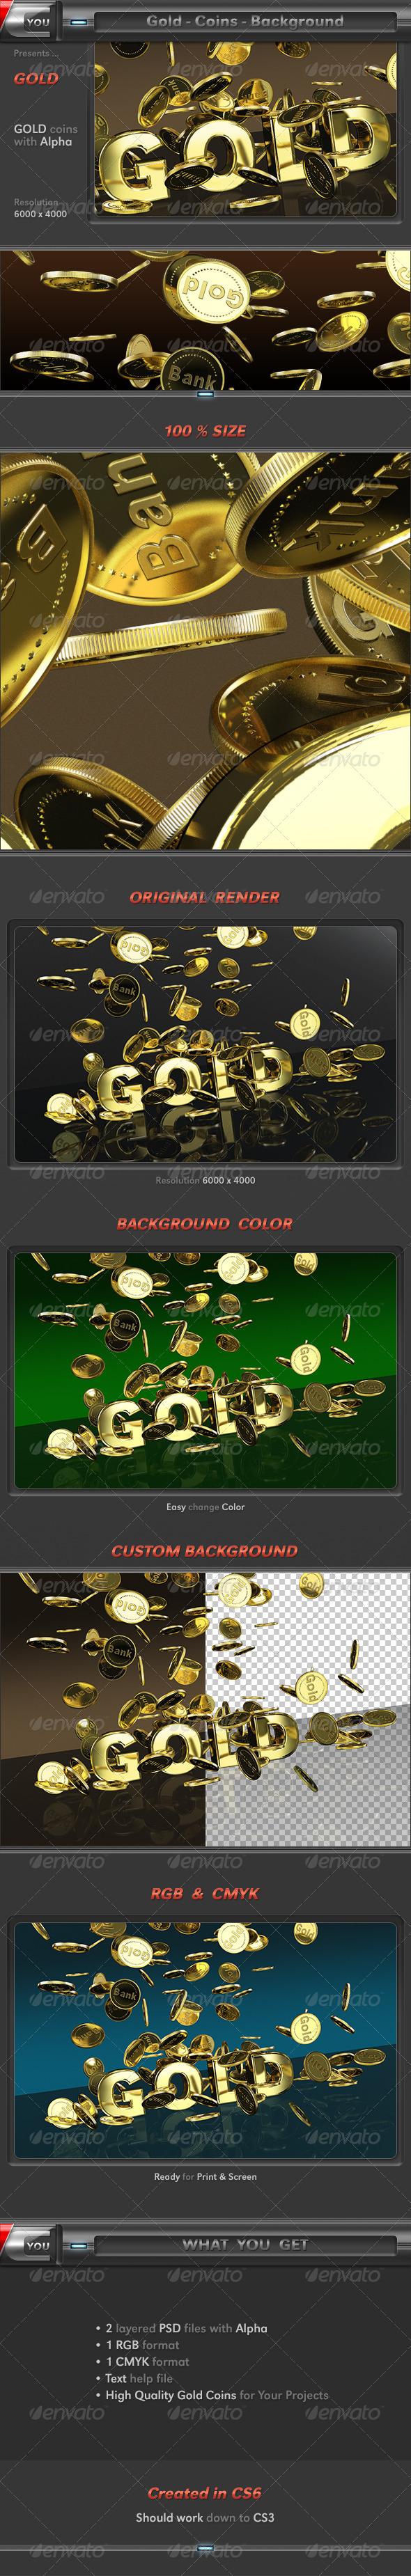 Gold Coins 3D Background - Text 3D Renders